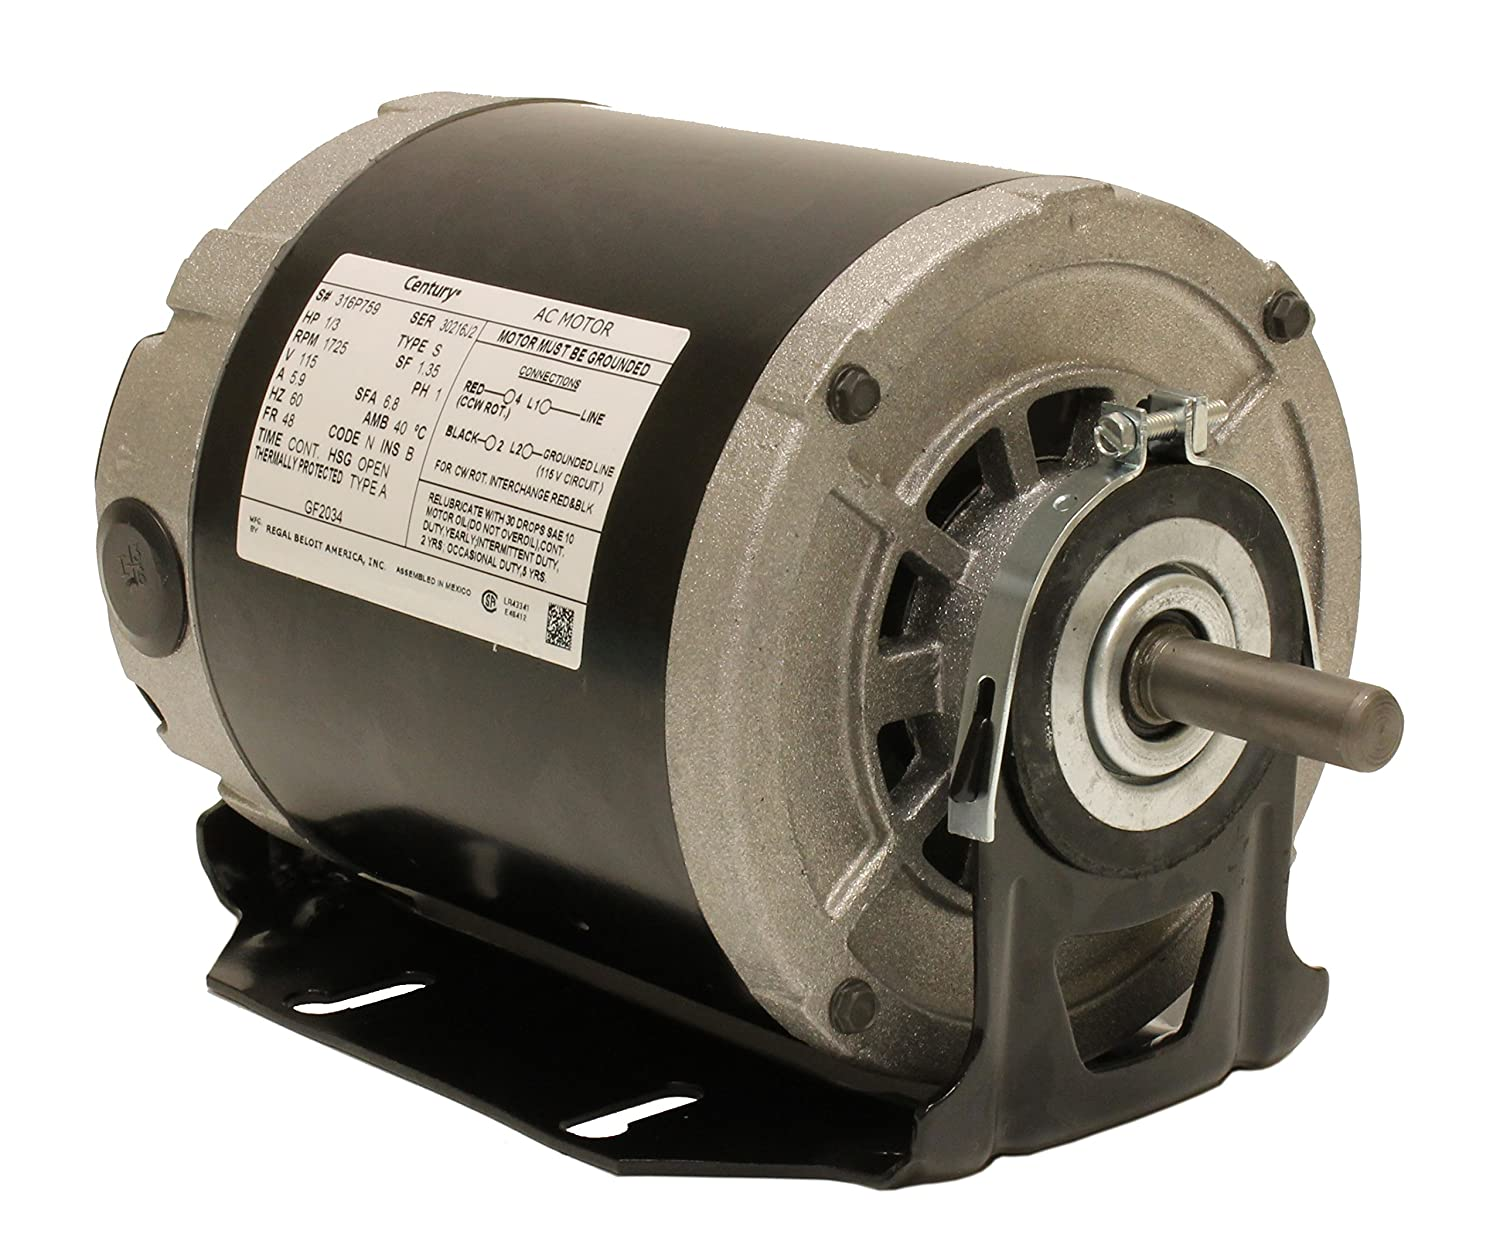 8A3A873 Wiring Diagram Single Phase Electric Motor 115 Volts ... on amperage and volt water diagram, 480 power in diagram, single-phase motor reversing diagram, 230 volt outlet diagram, 220 volt diagram, snugtop power actuator installation diagram, pneumatic actuator diagram,